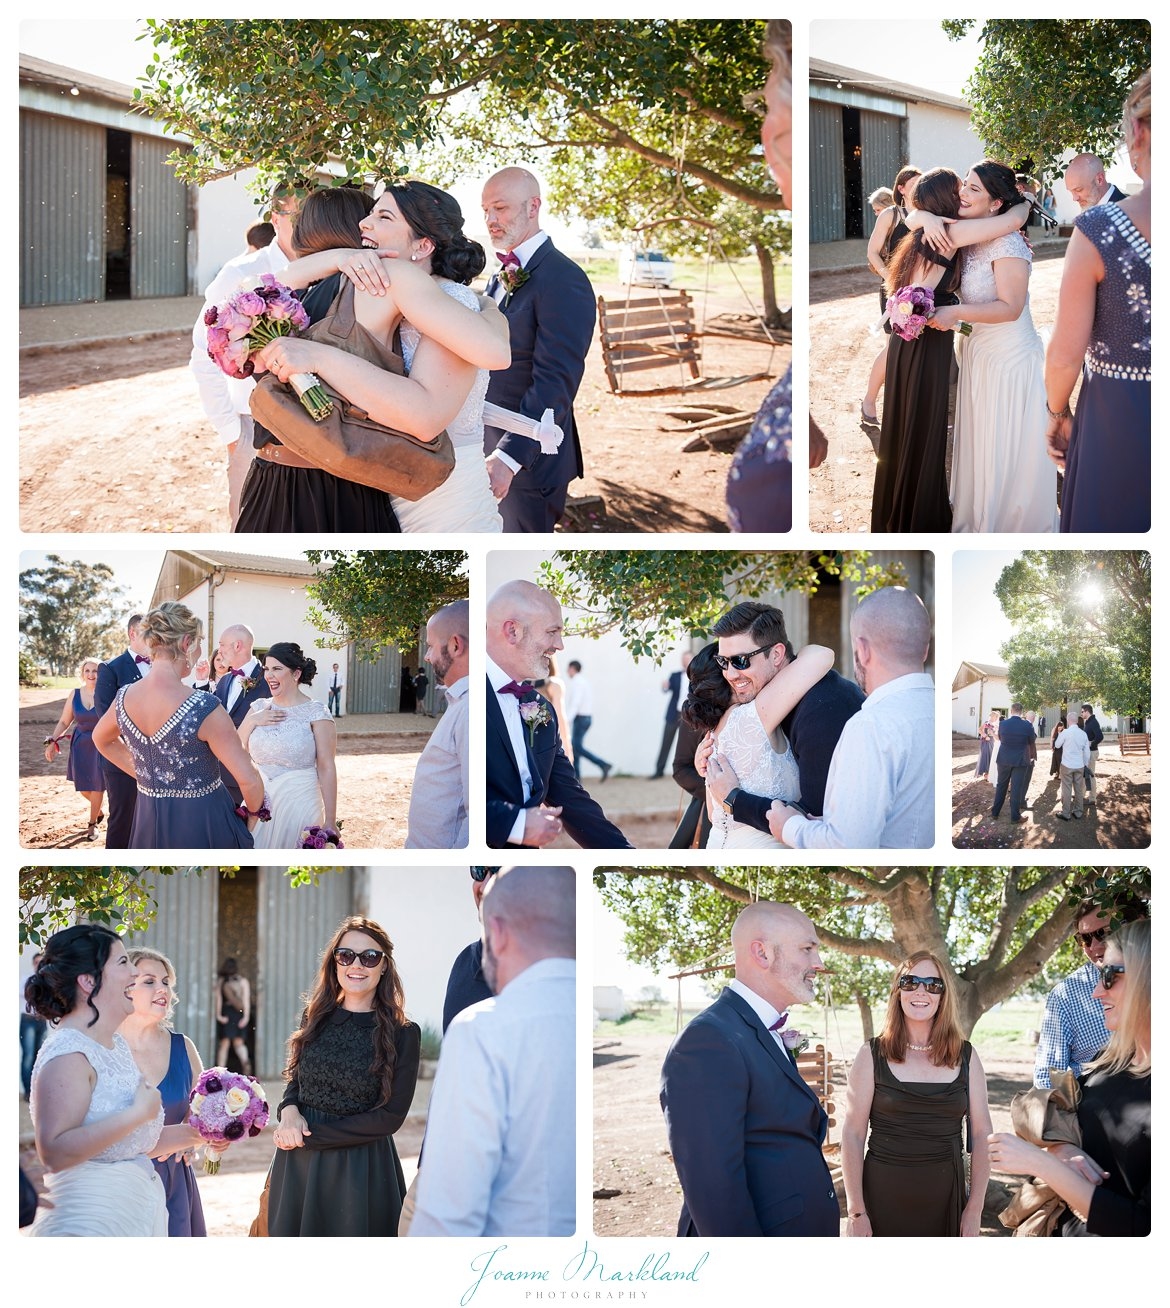 boorwater-wedding-hopefield-west-coast-cape-town-joanne-markland-photography-025